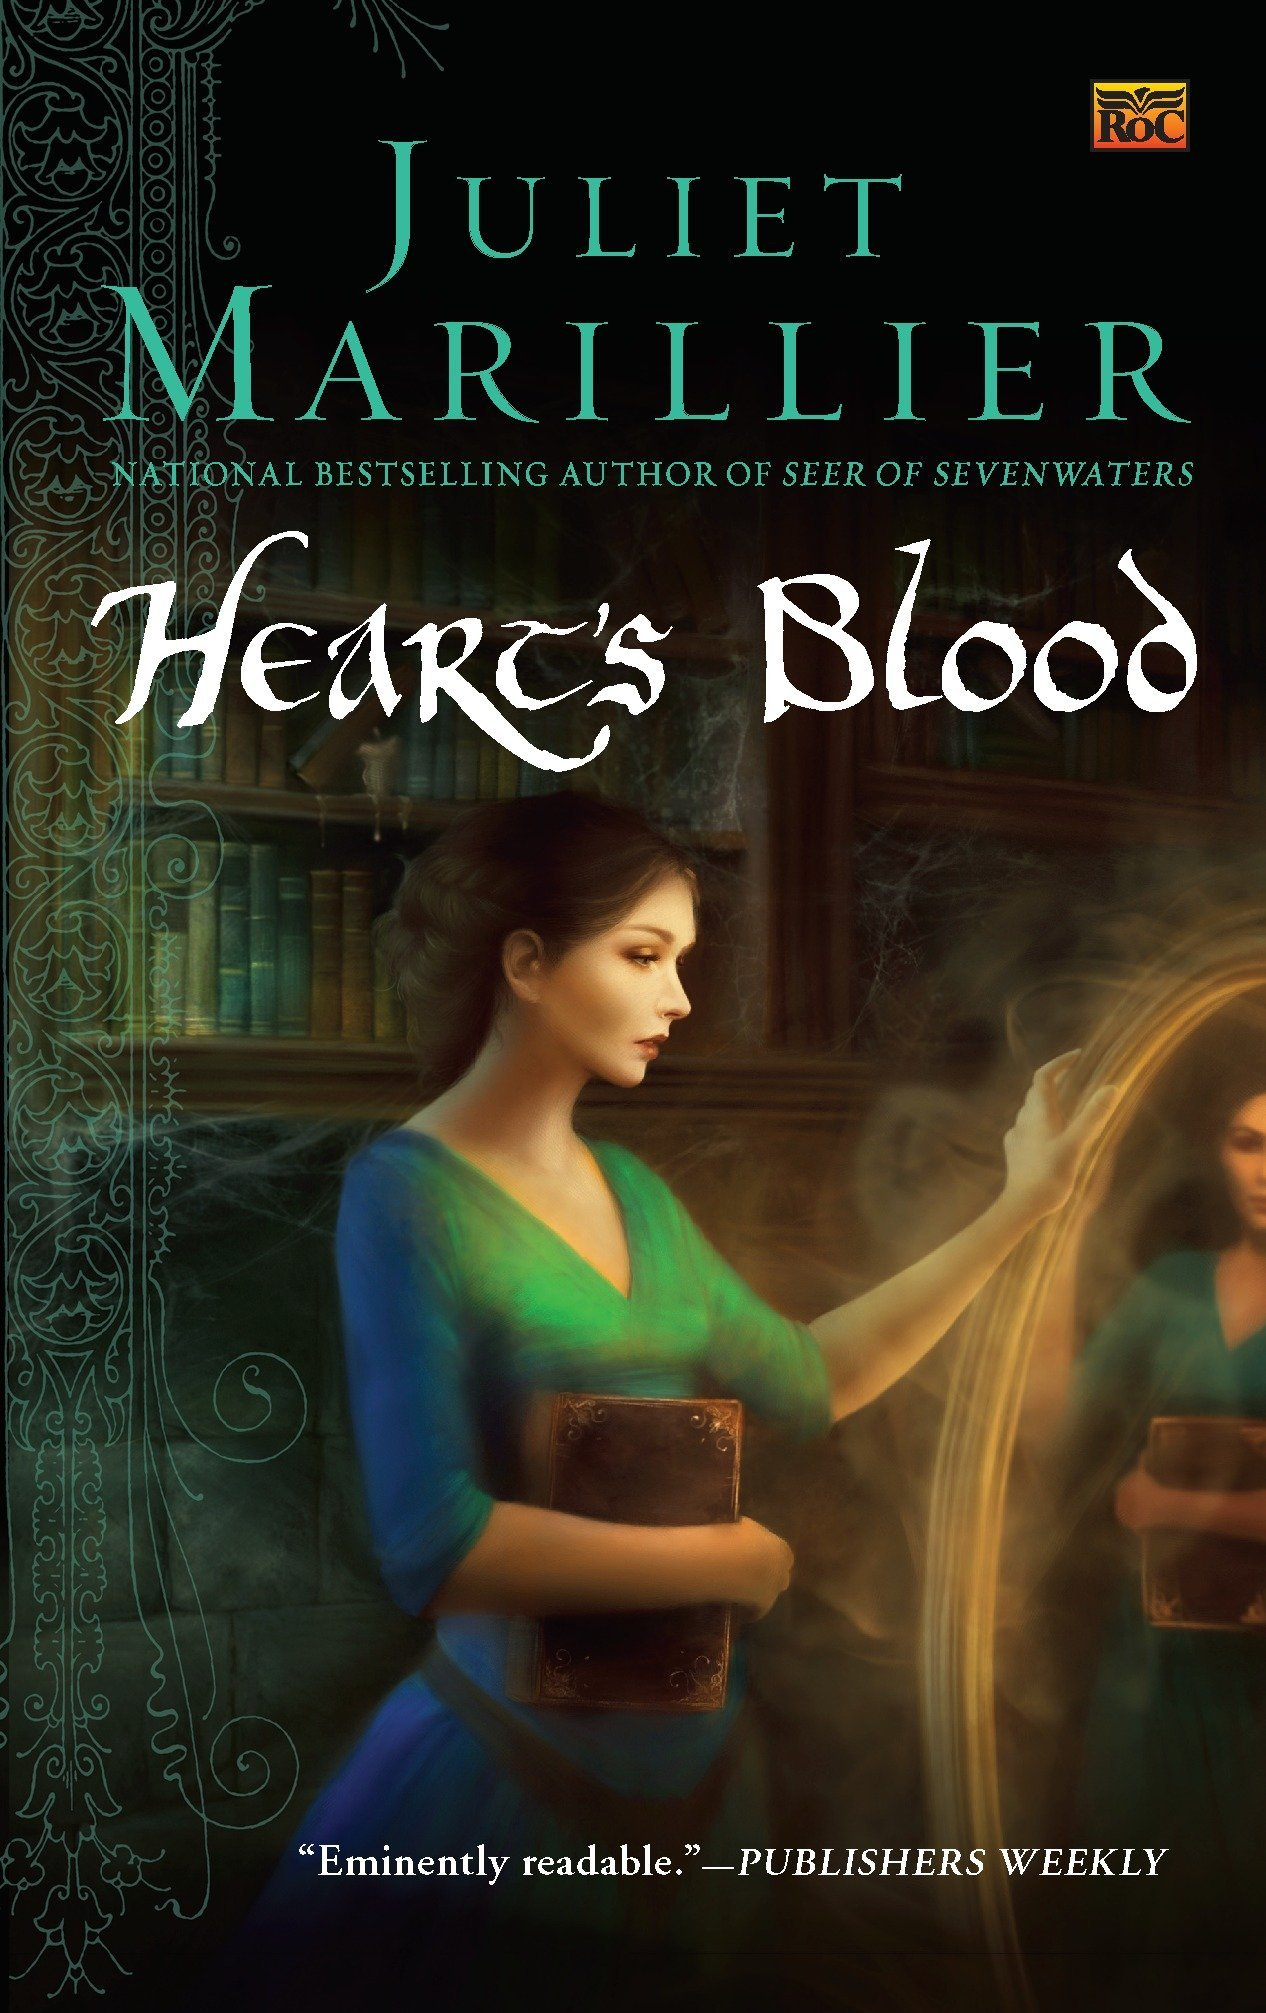 Image result for heart's blood by juliet marillier